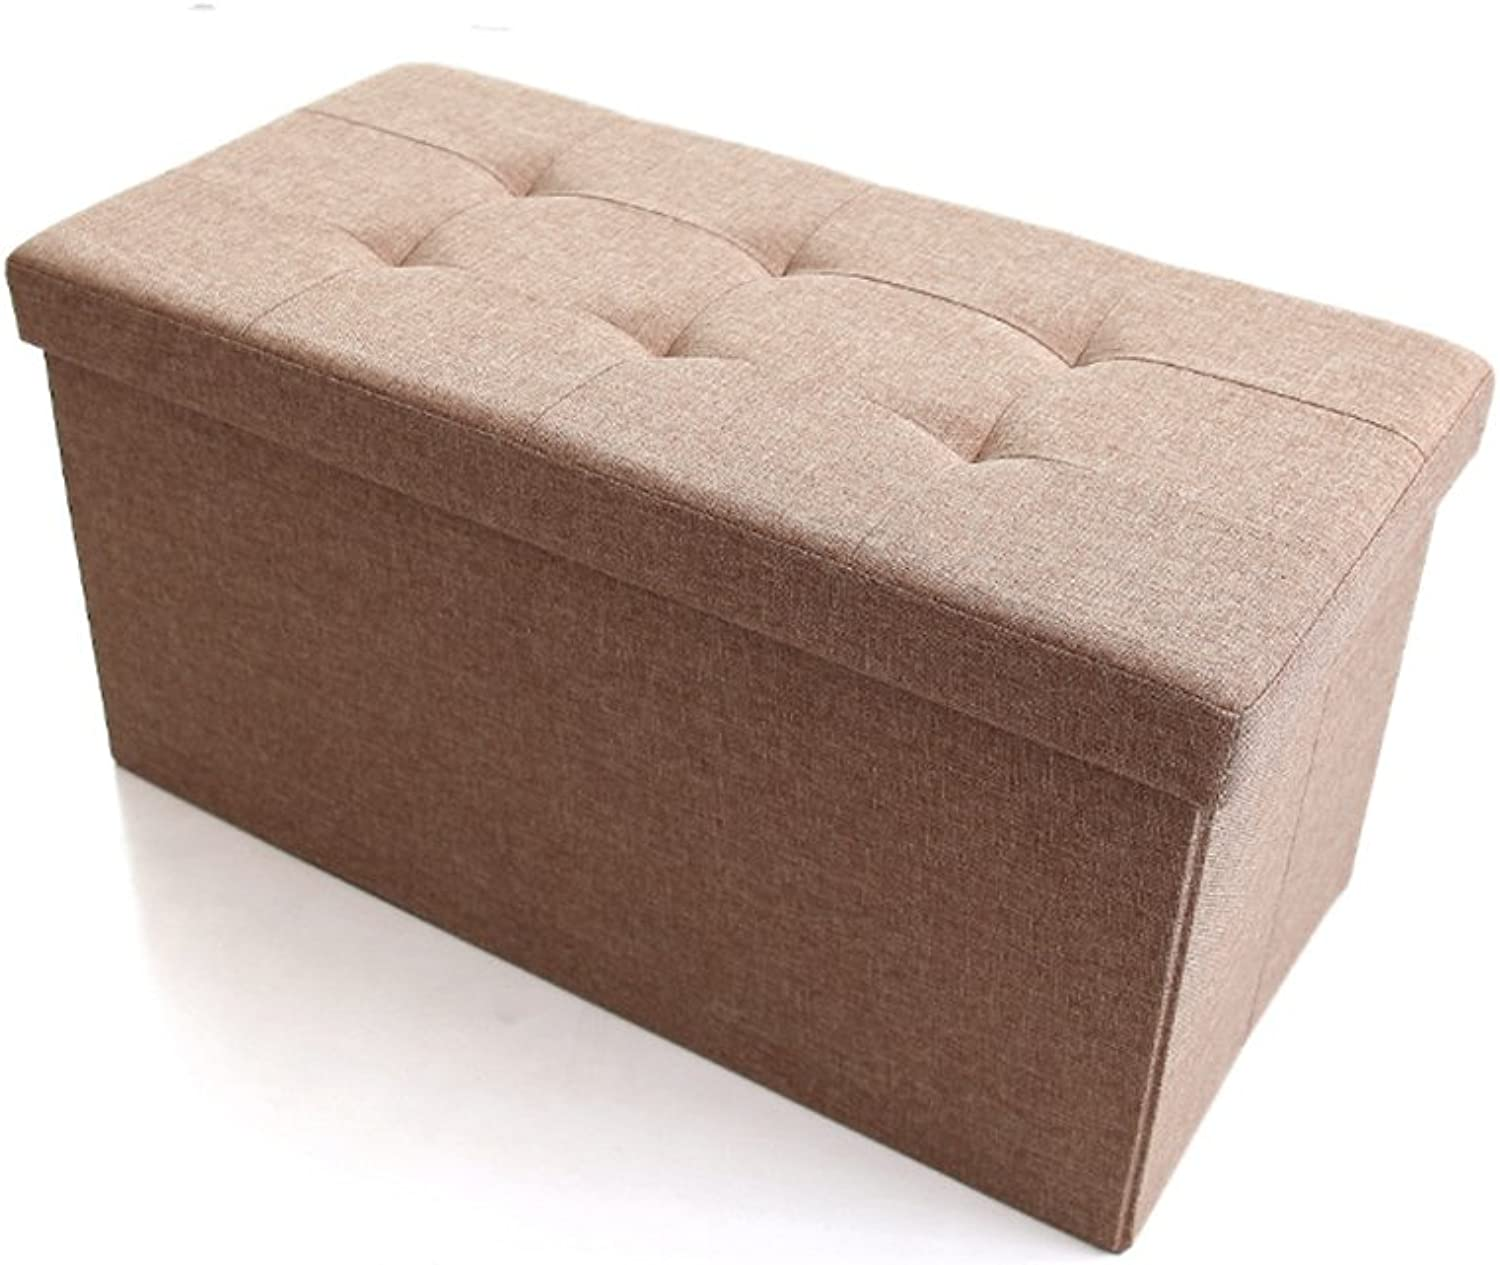 ZHANGRONG- Multi-Functional Storage Stool Cloth Folding Storage Box Can Take People Storage Box Rectangular Sofa for shoes Stool Sofa Stool (color Optional) (color   A)